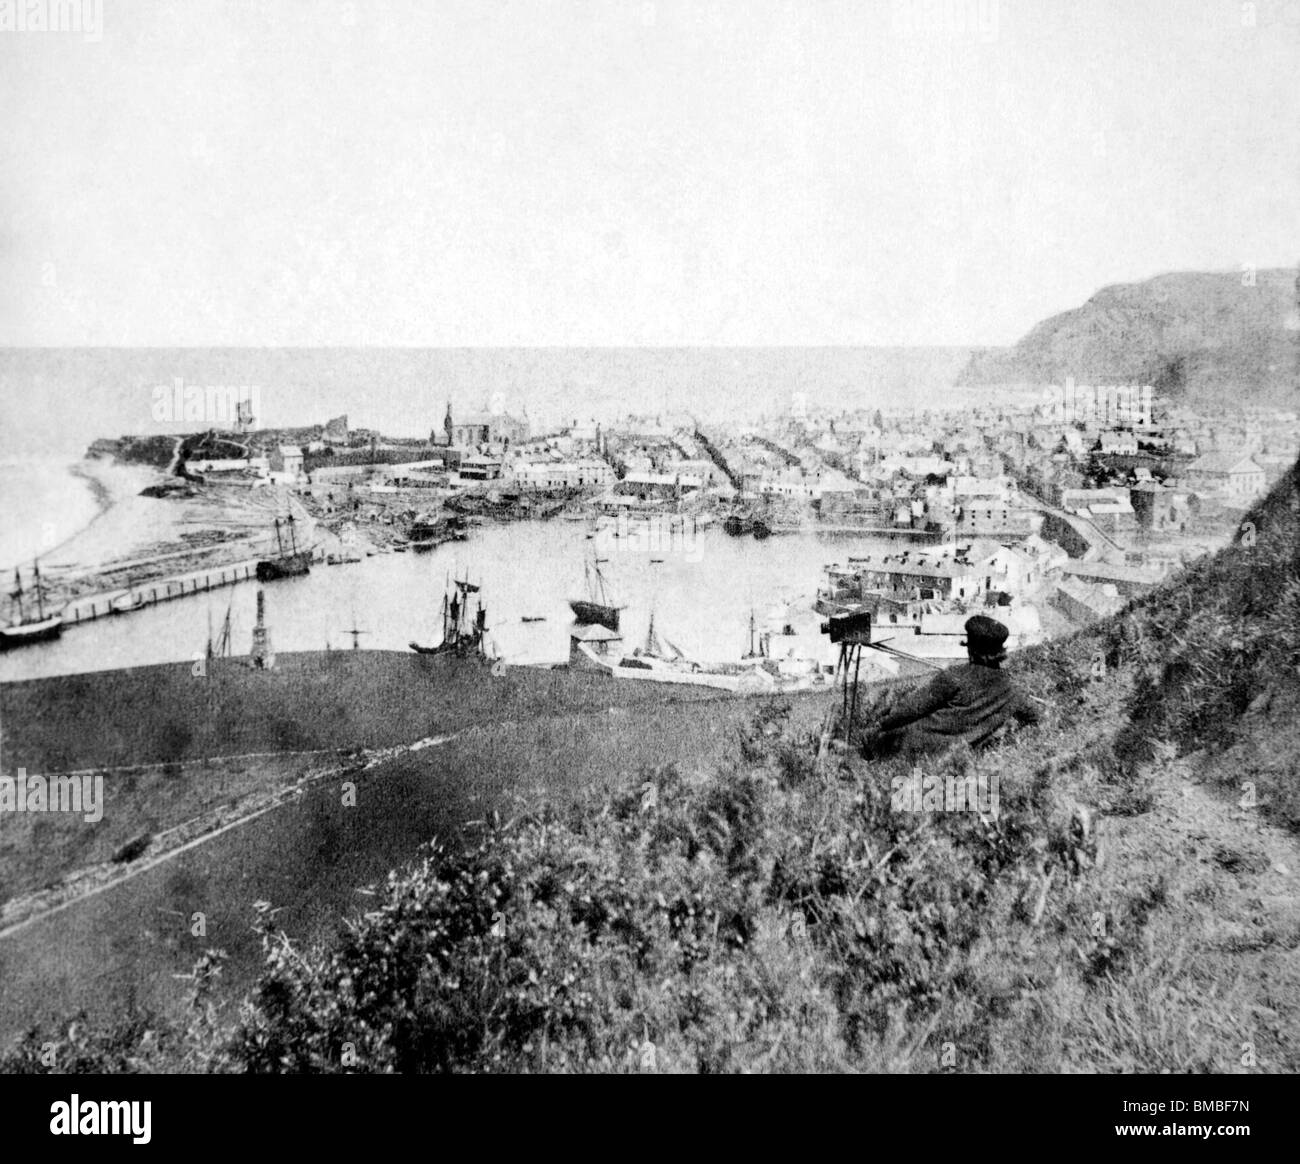 Wales, Victorian photographer with camera photographing Aberystwyth Harbour in mid 1800s - Stock Image